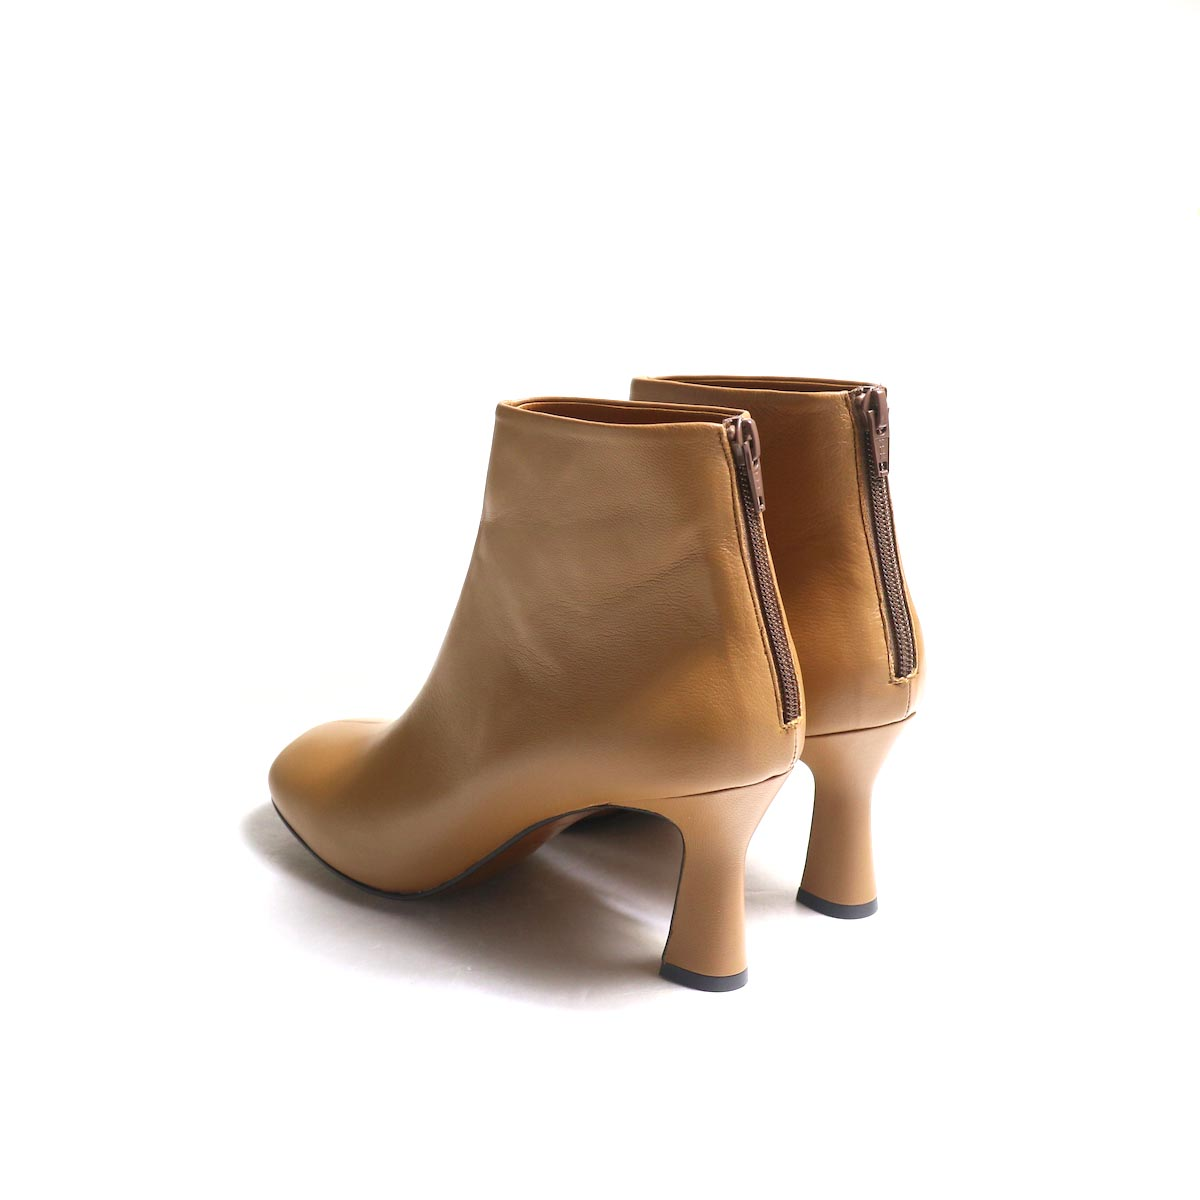 JANE SMITH / SHORT BOOTS -Camel 背面